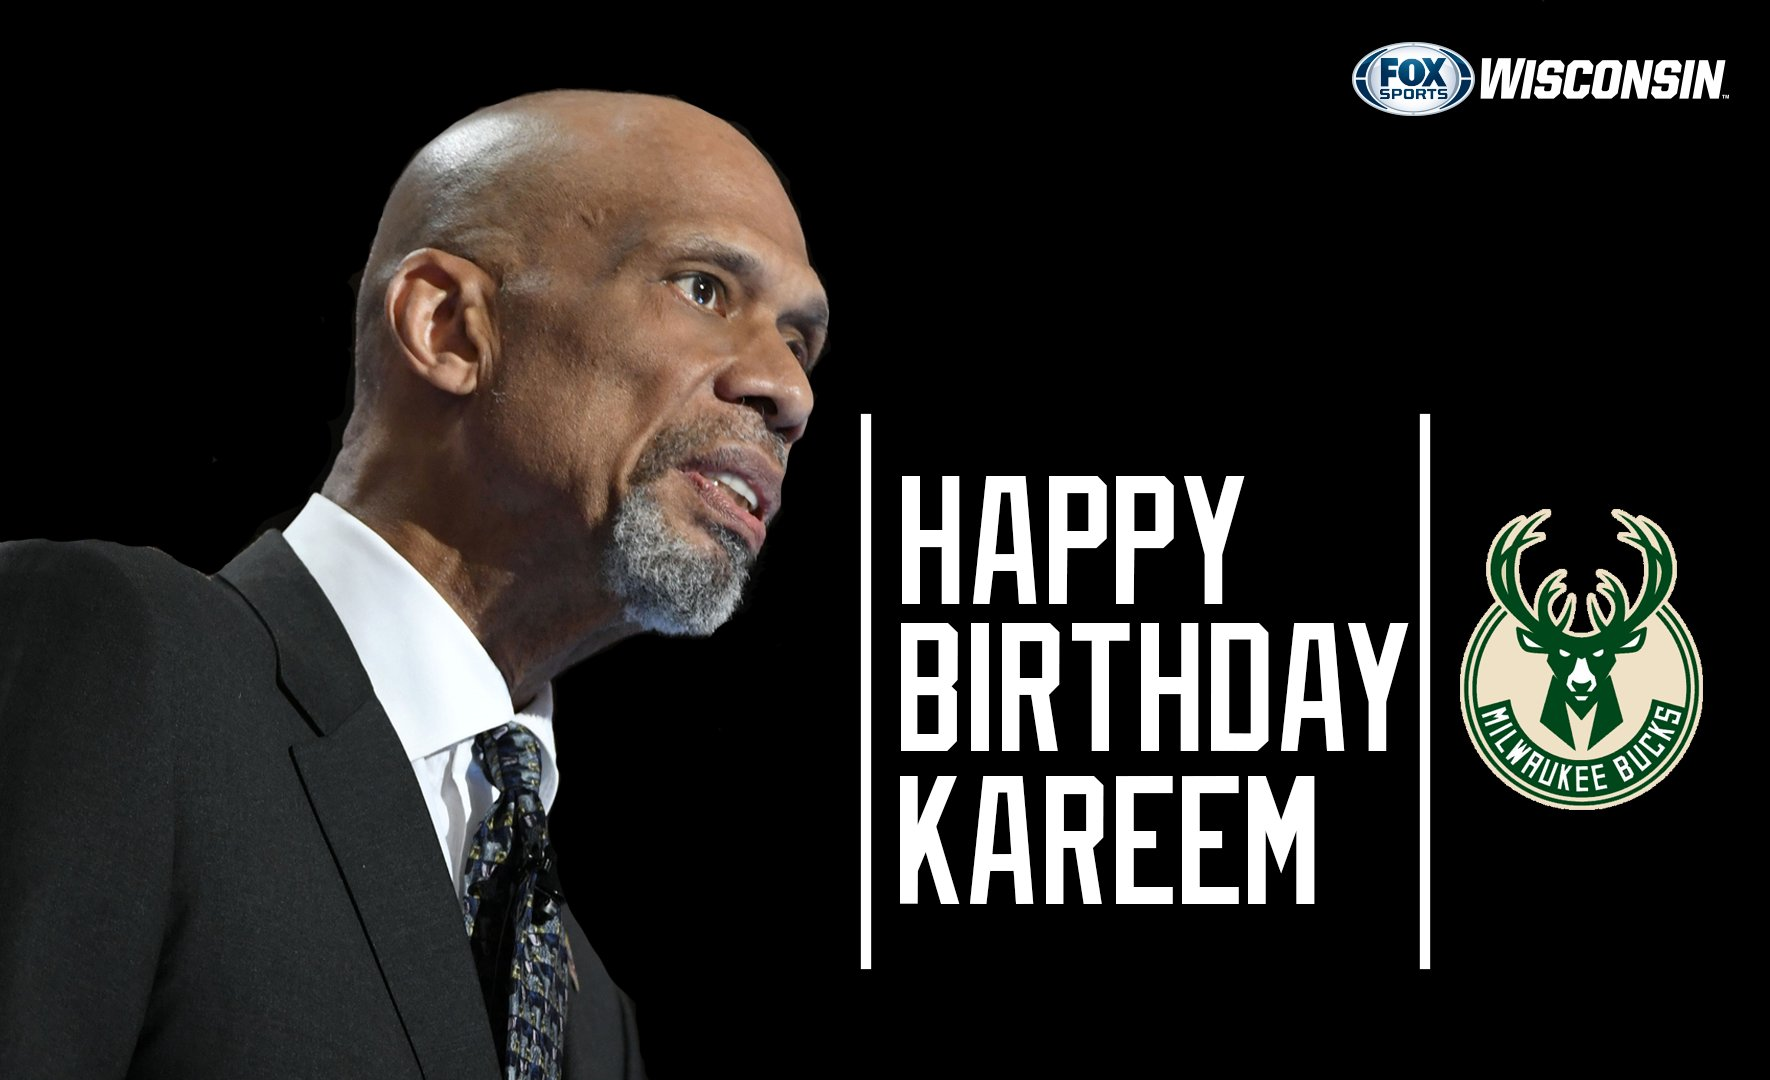 Happy Birthday to Legend and Hall of Famer Kareem Abdul-Jabbar (